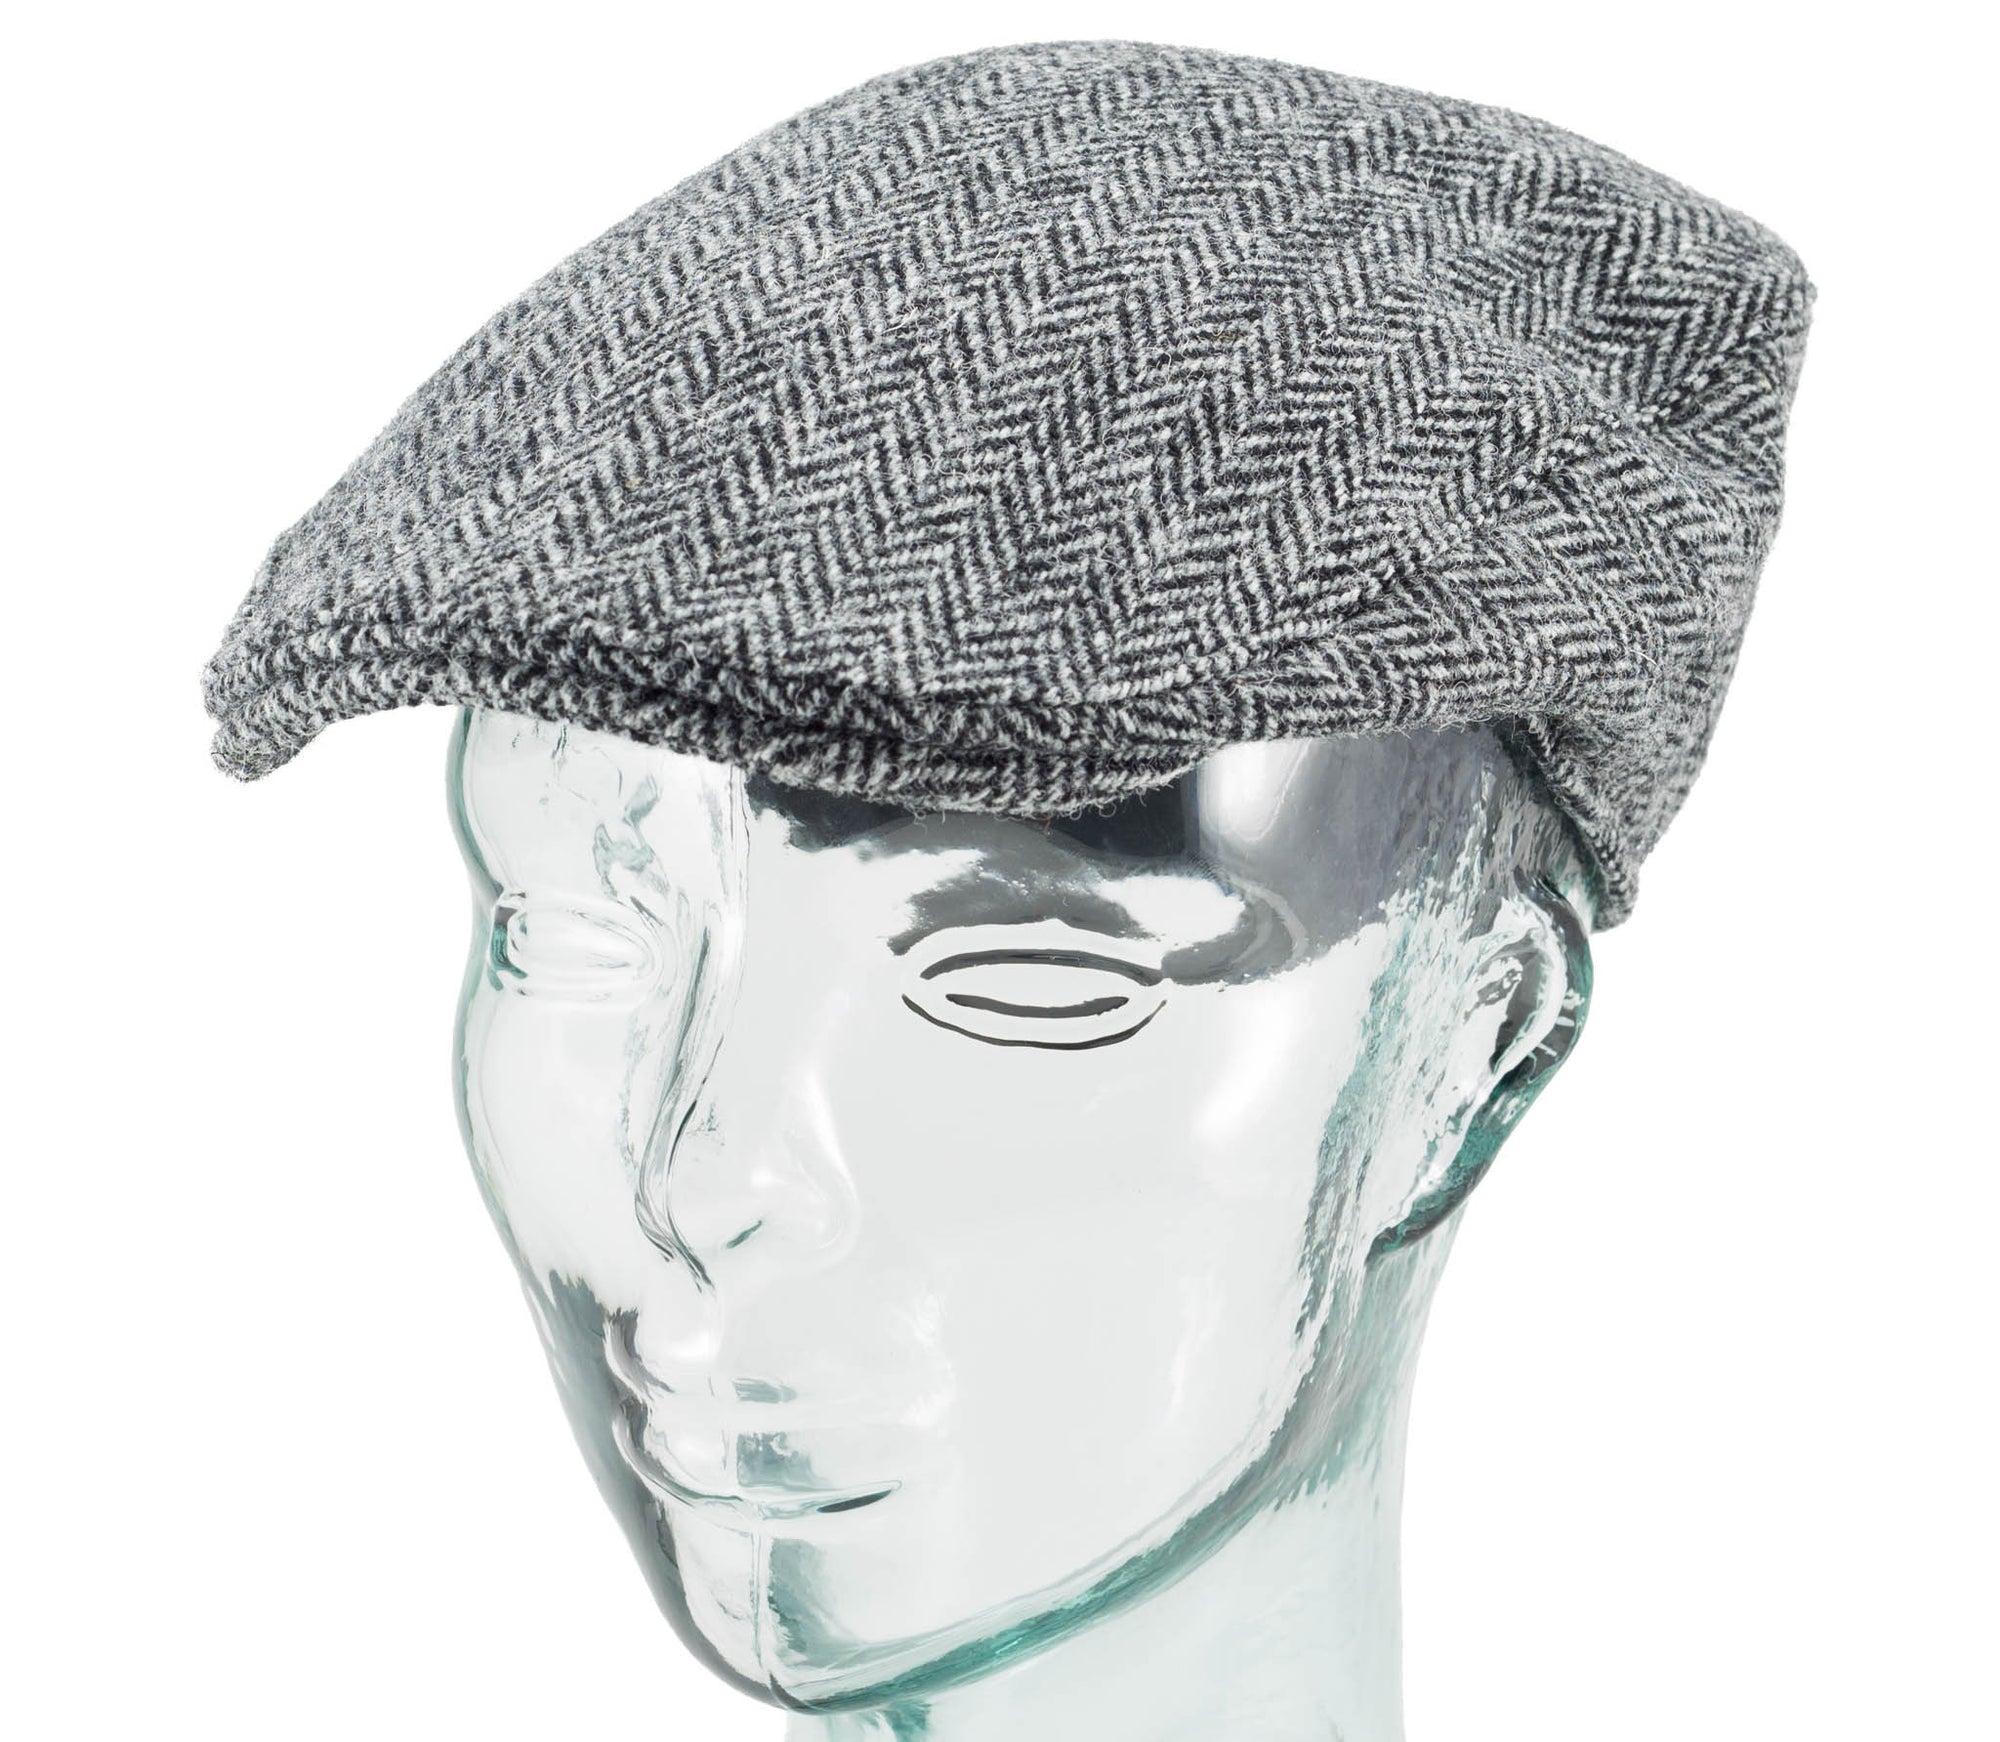 Scottish Harris Tweed - Donegal Touring Cap